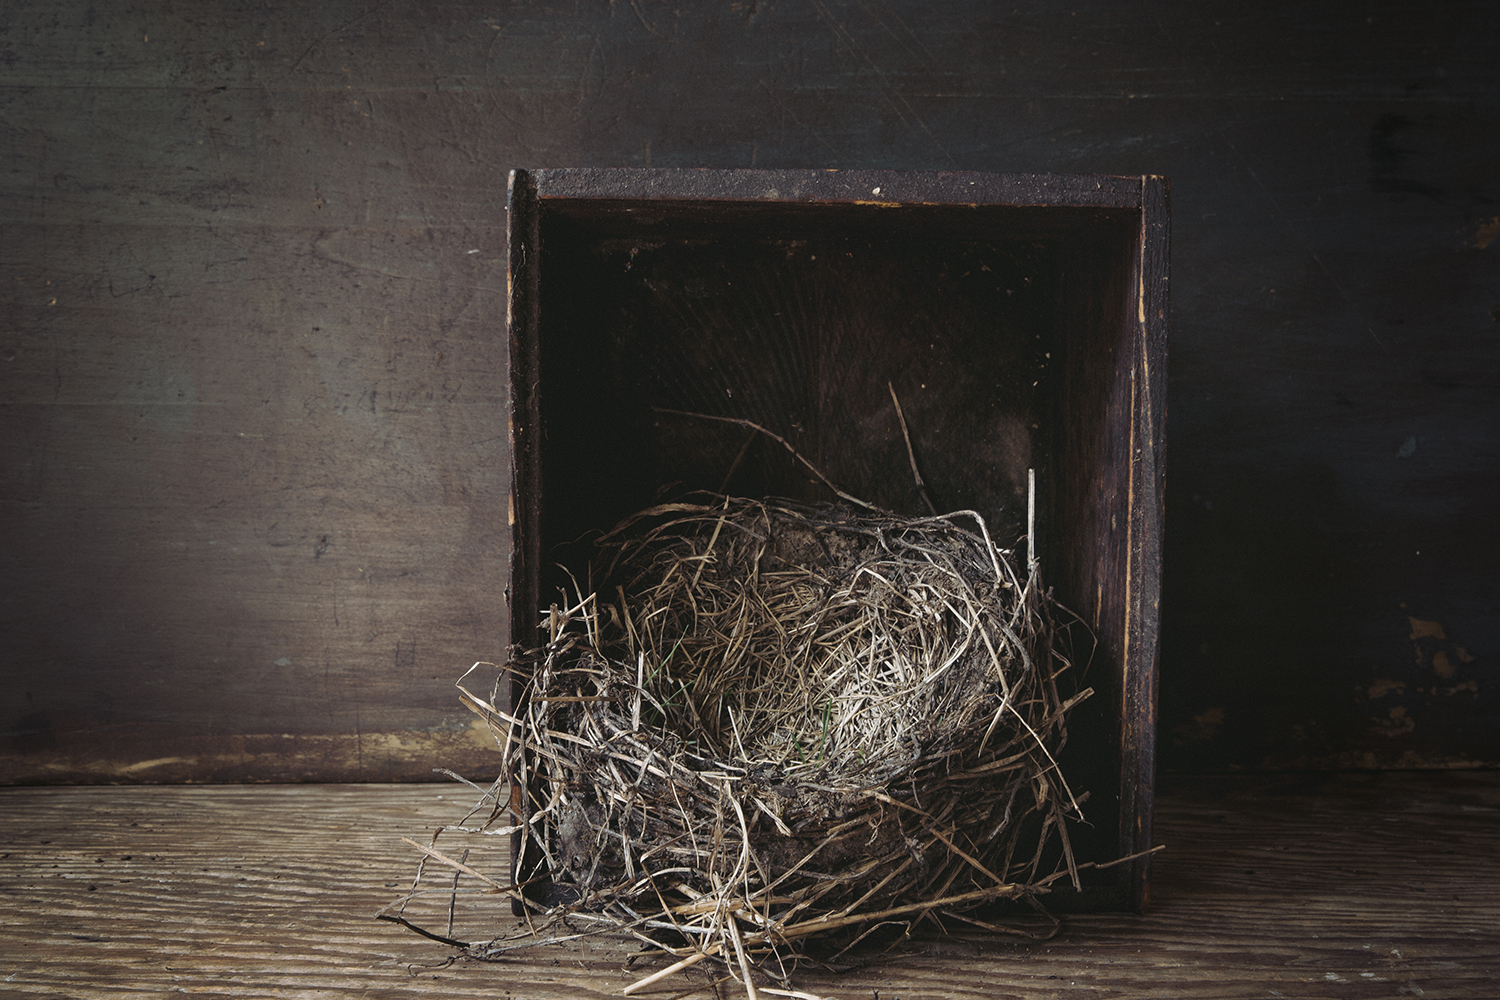 BirdNest_in_Box_0016.jpg